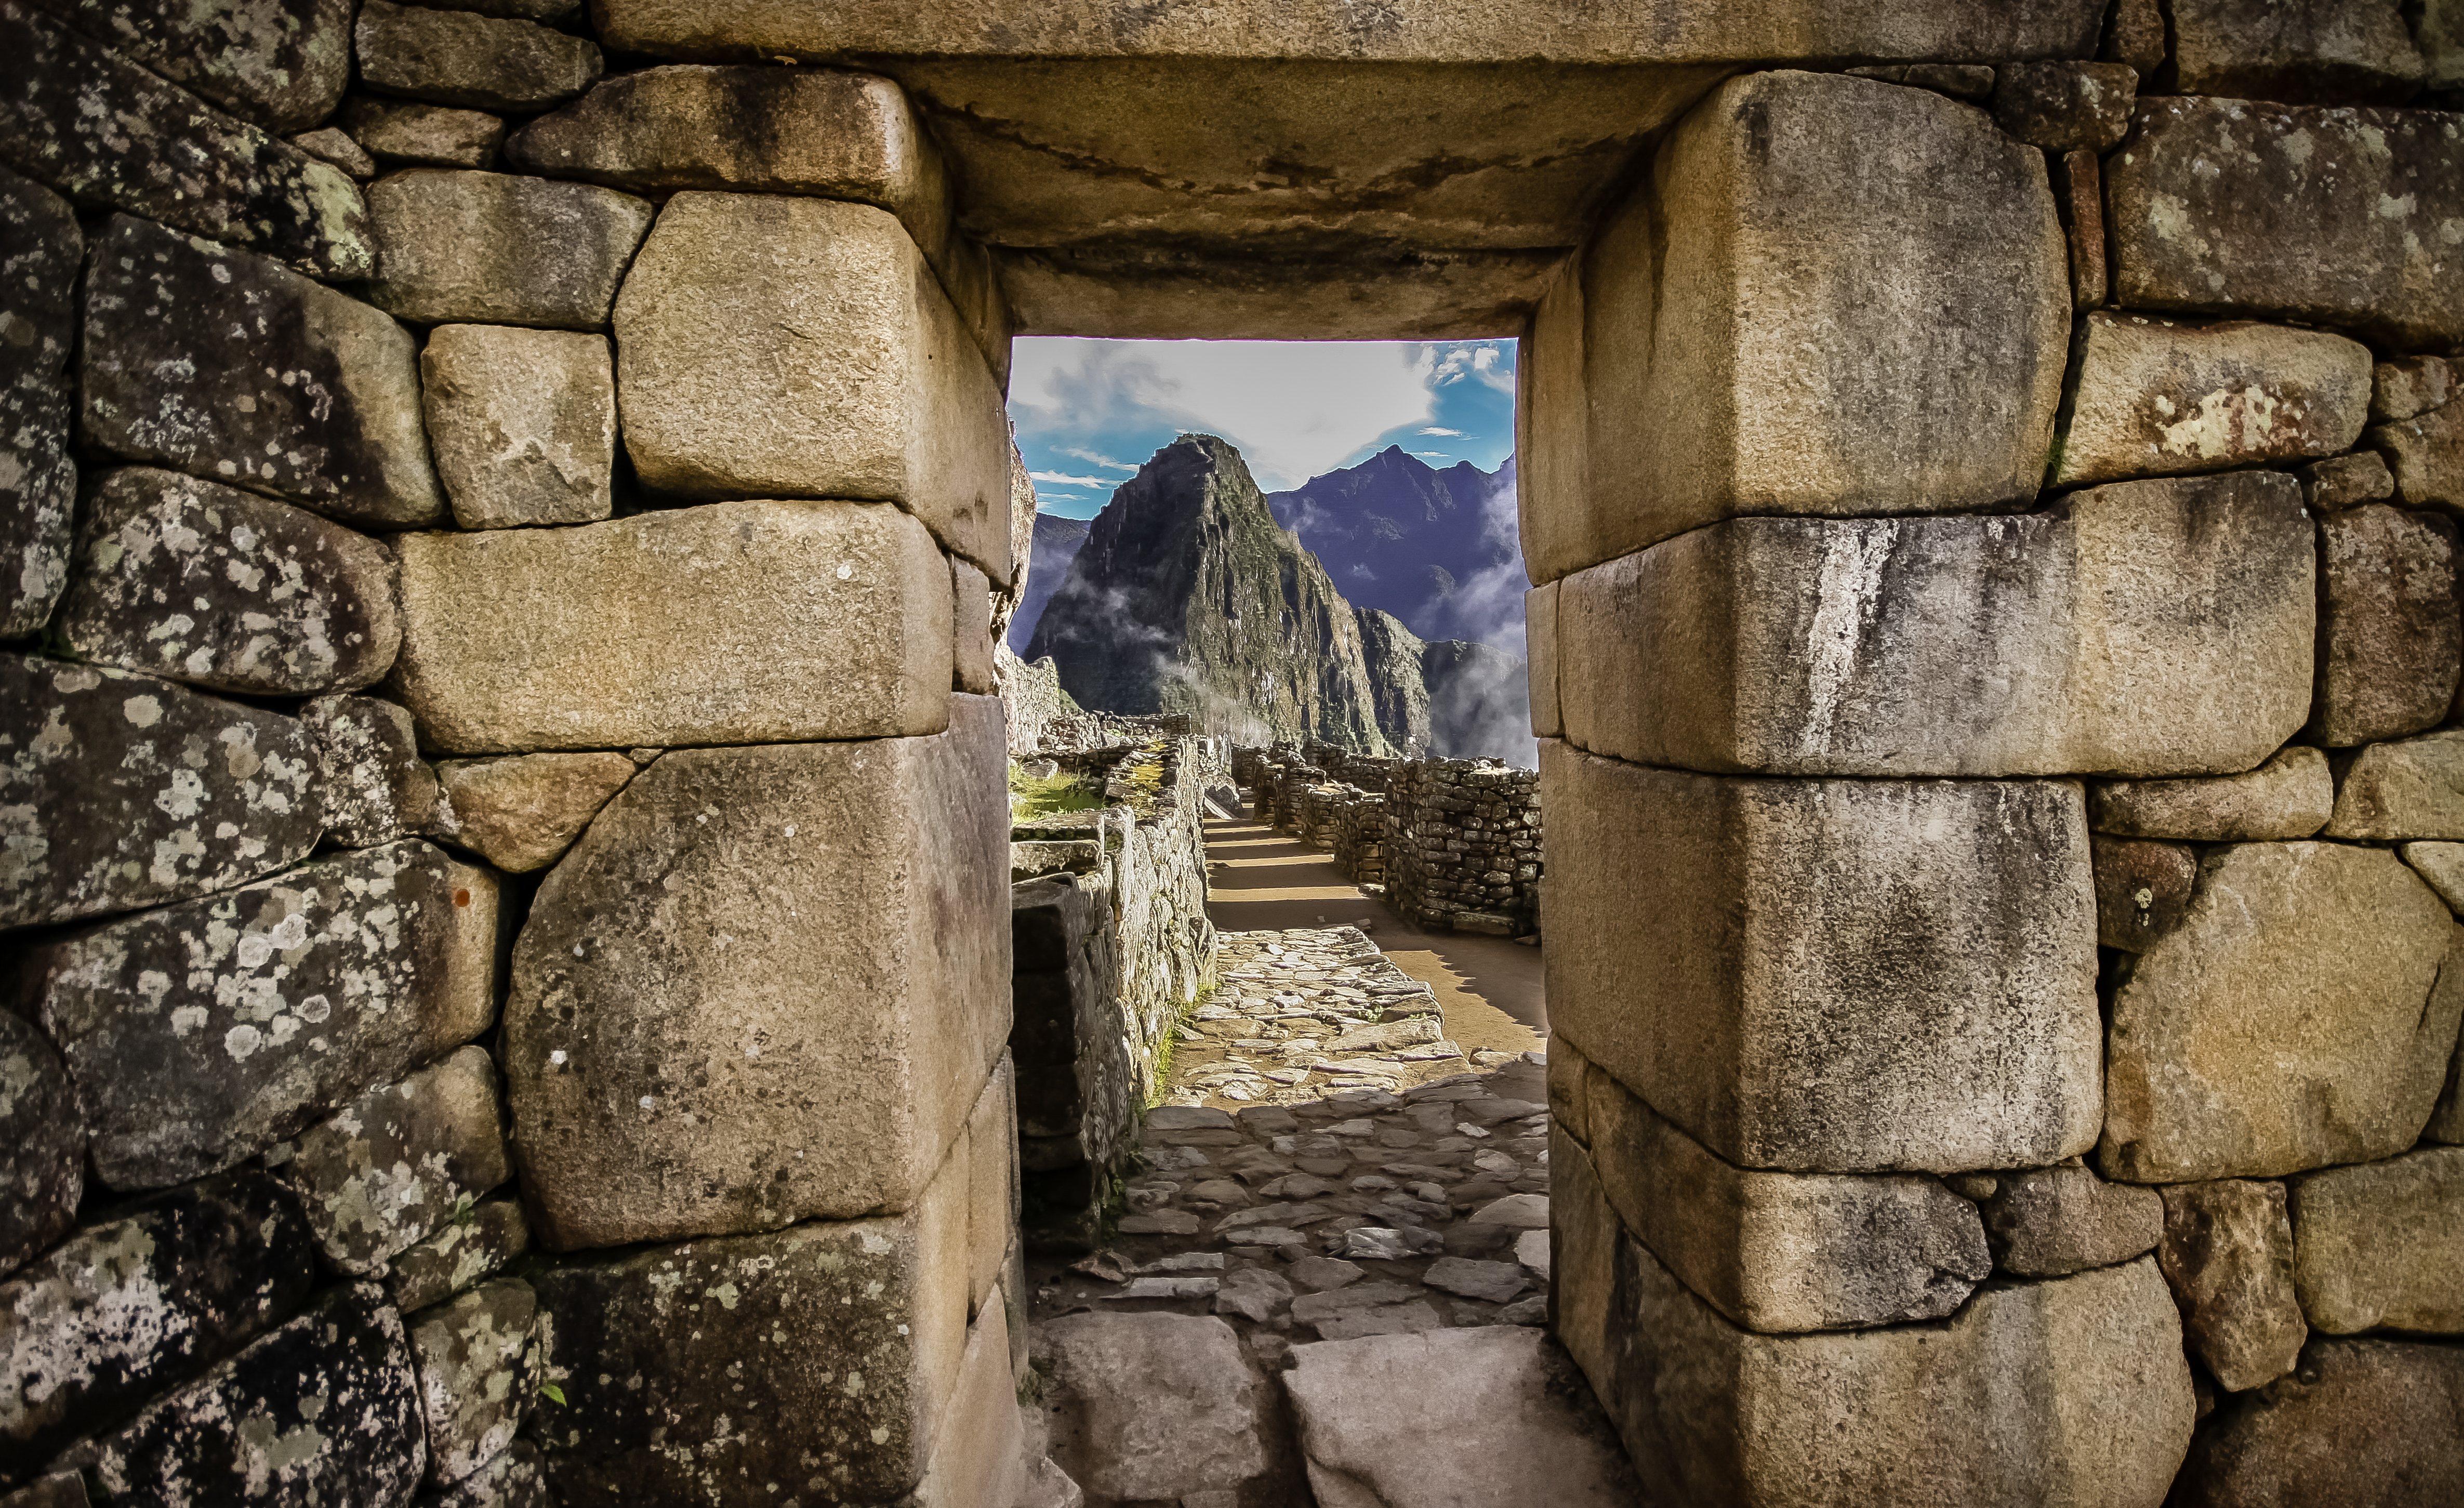 View of mountain peak through window in stone wall